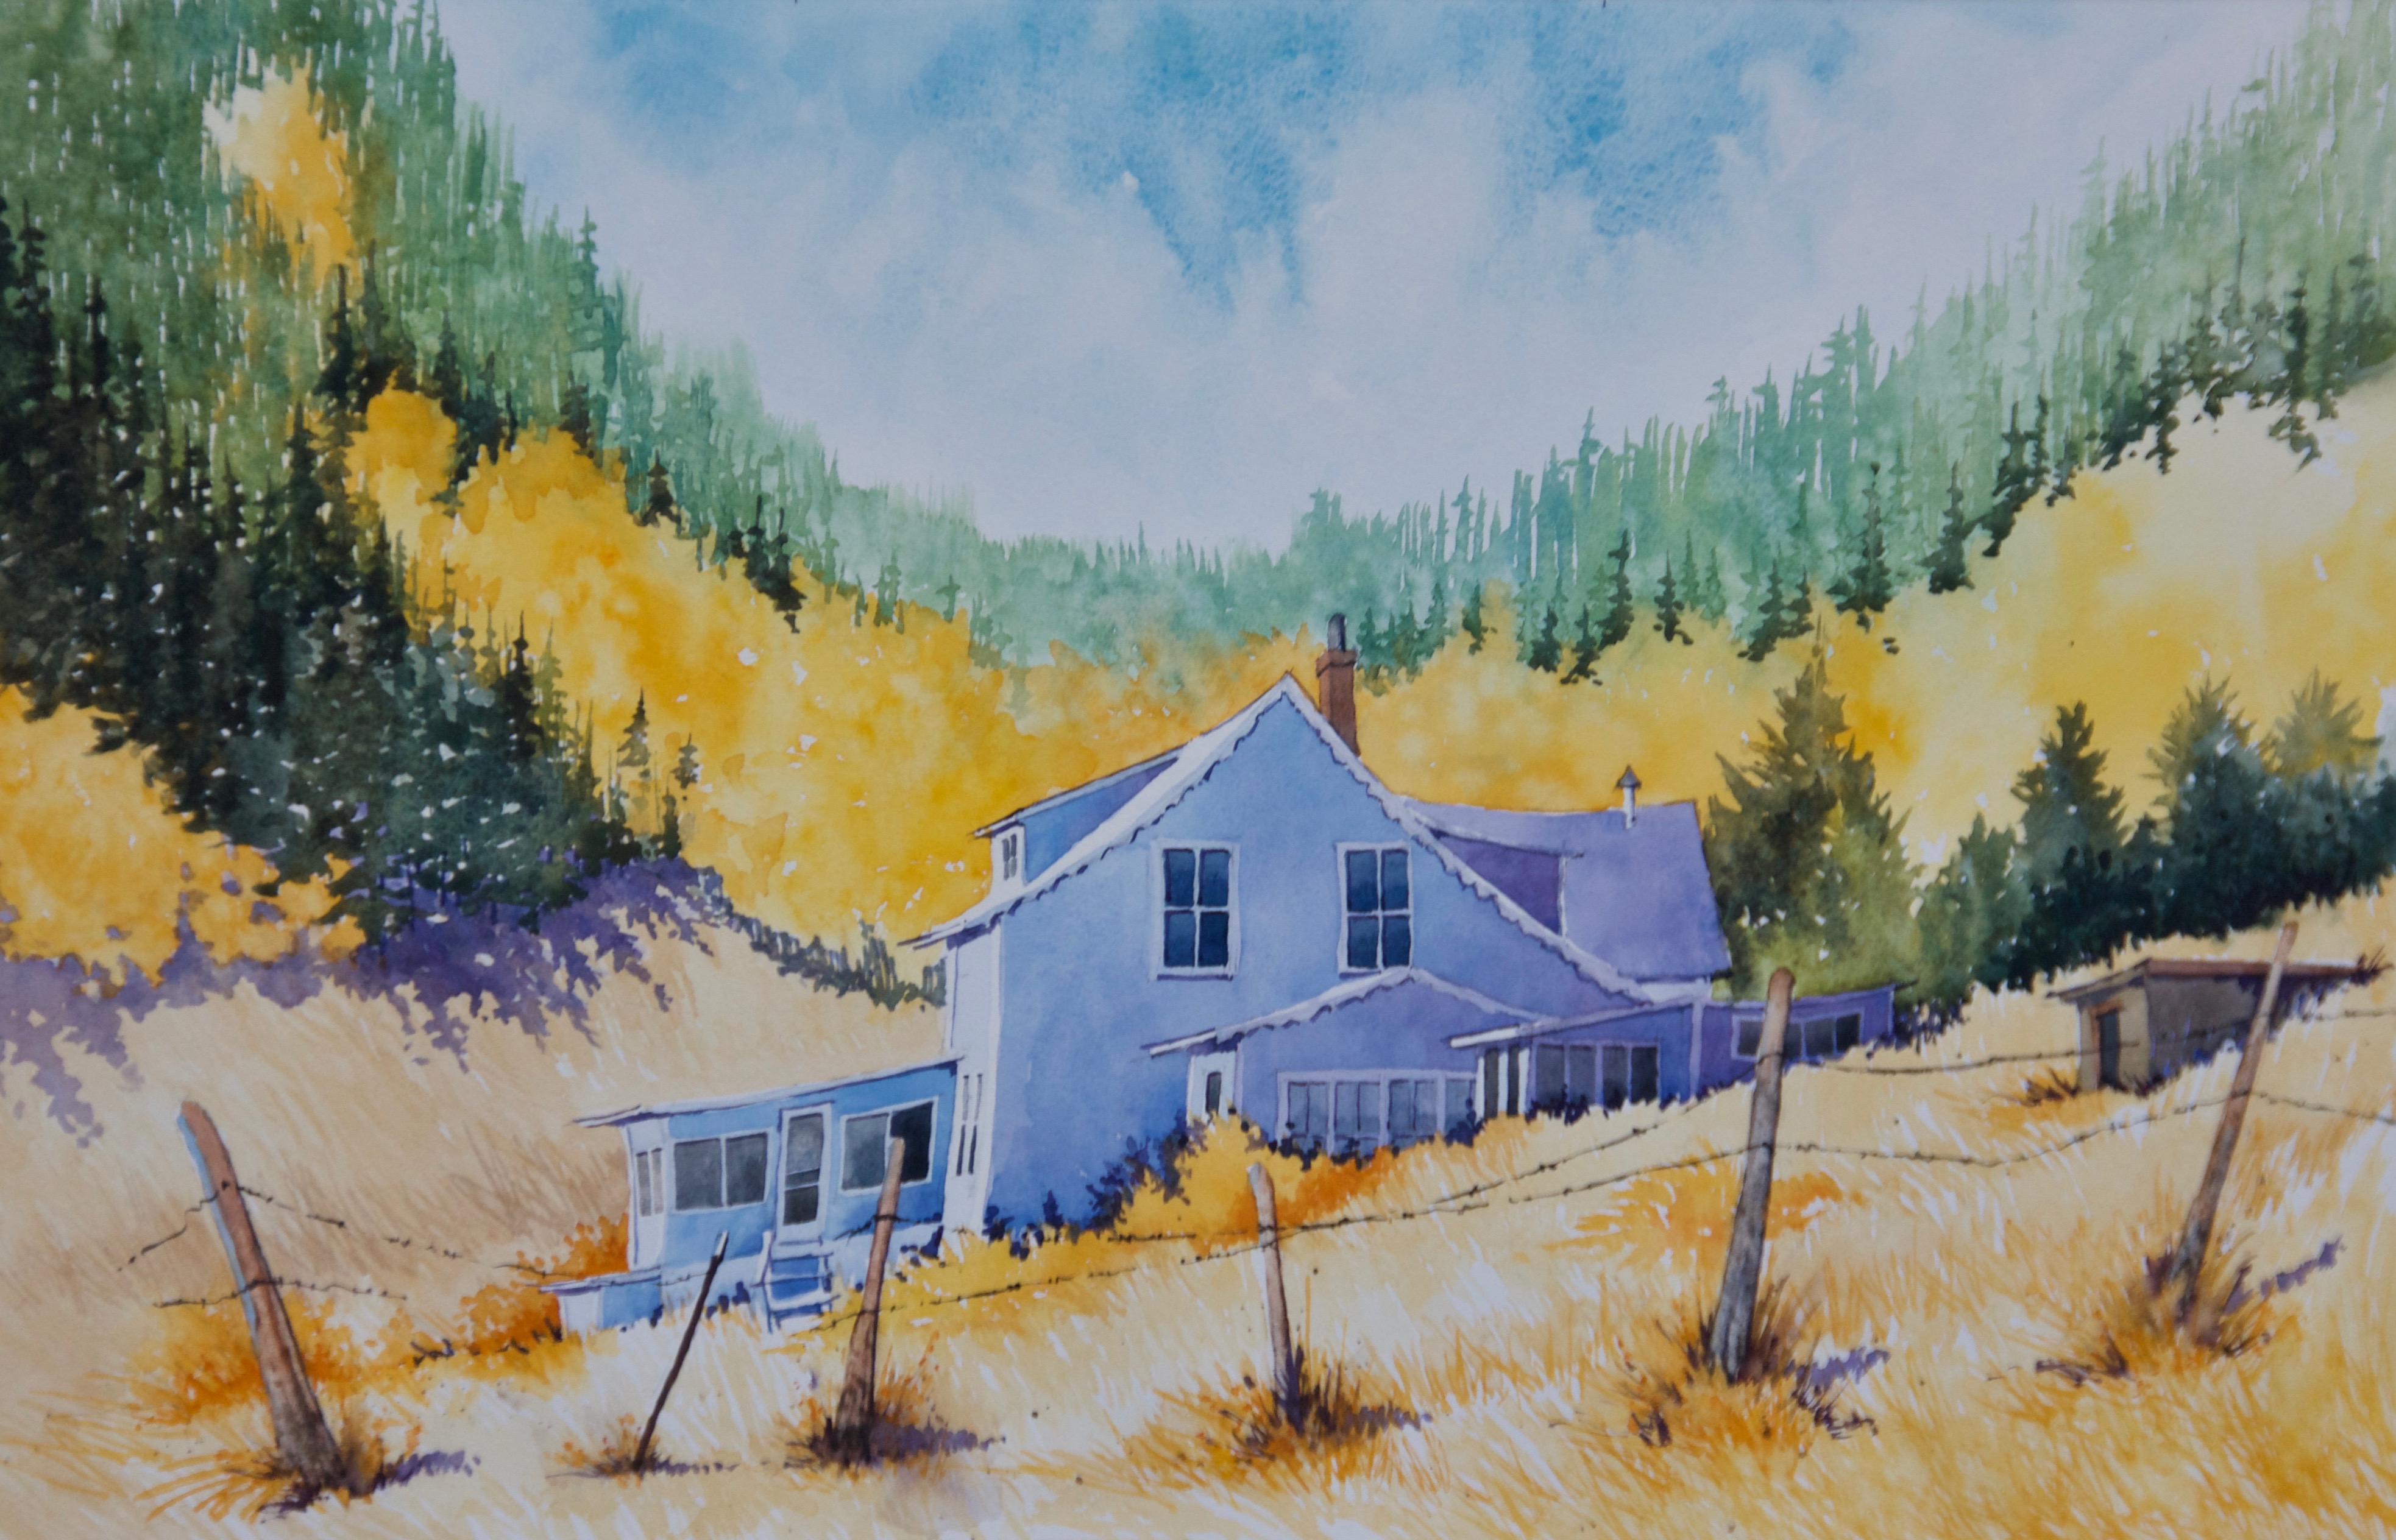 Painting #55 High Country Autumn